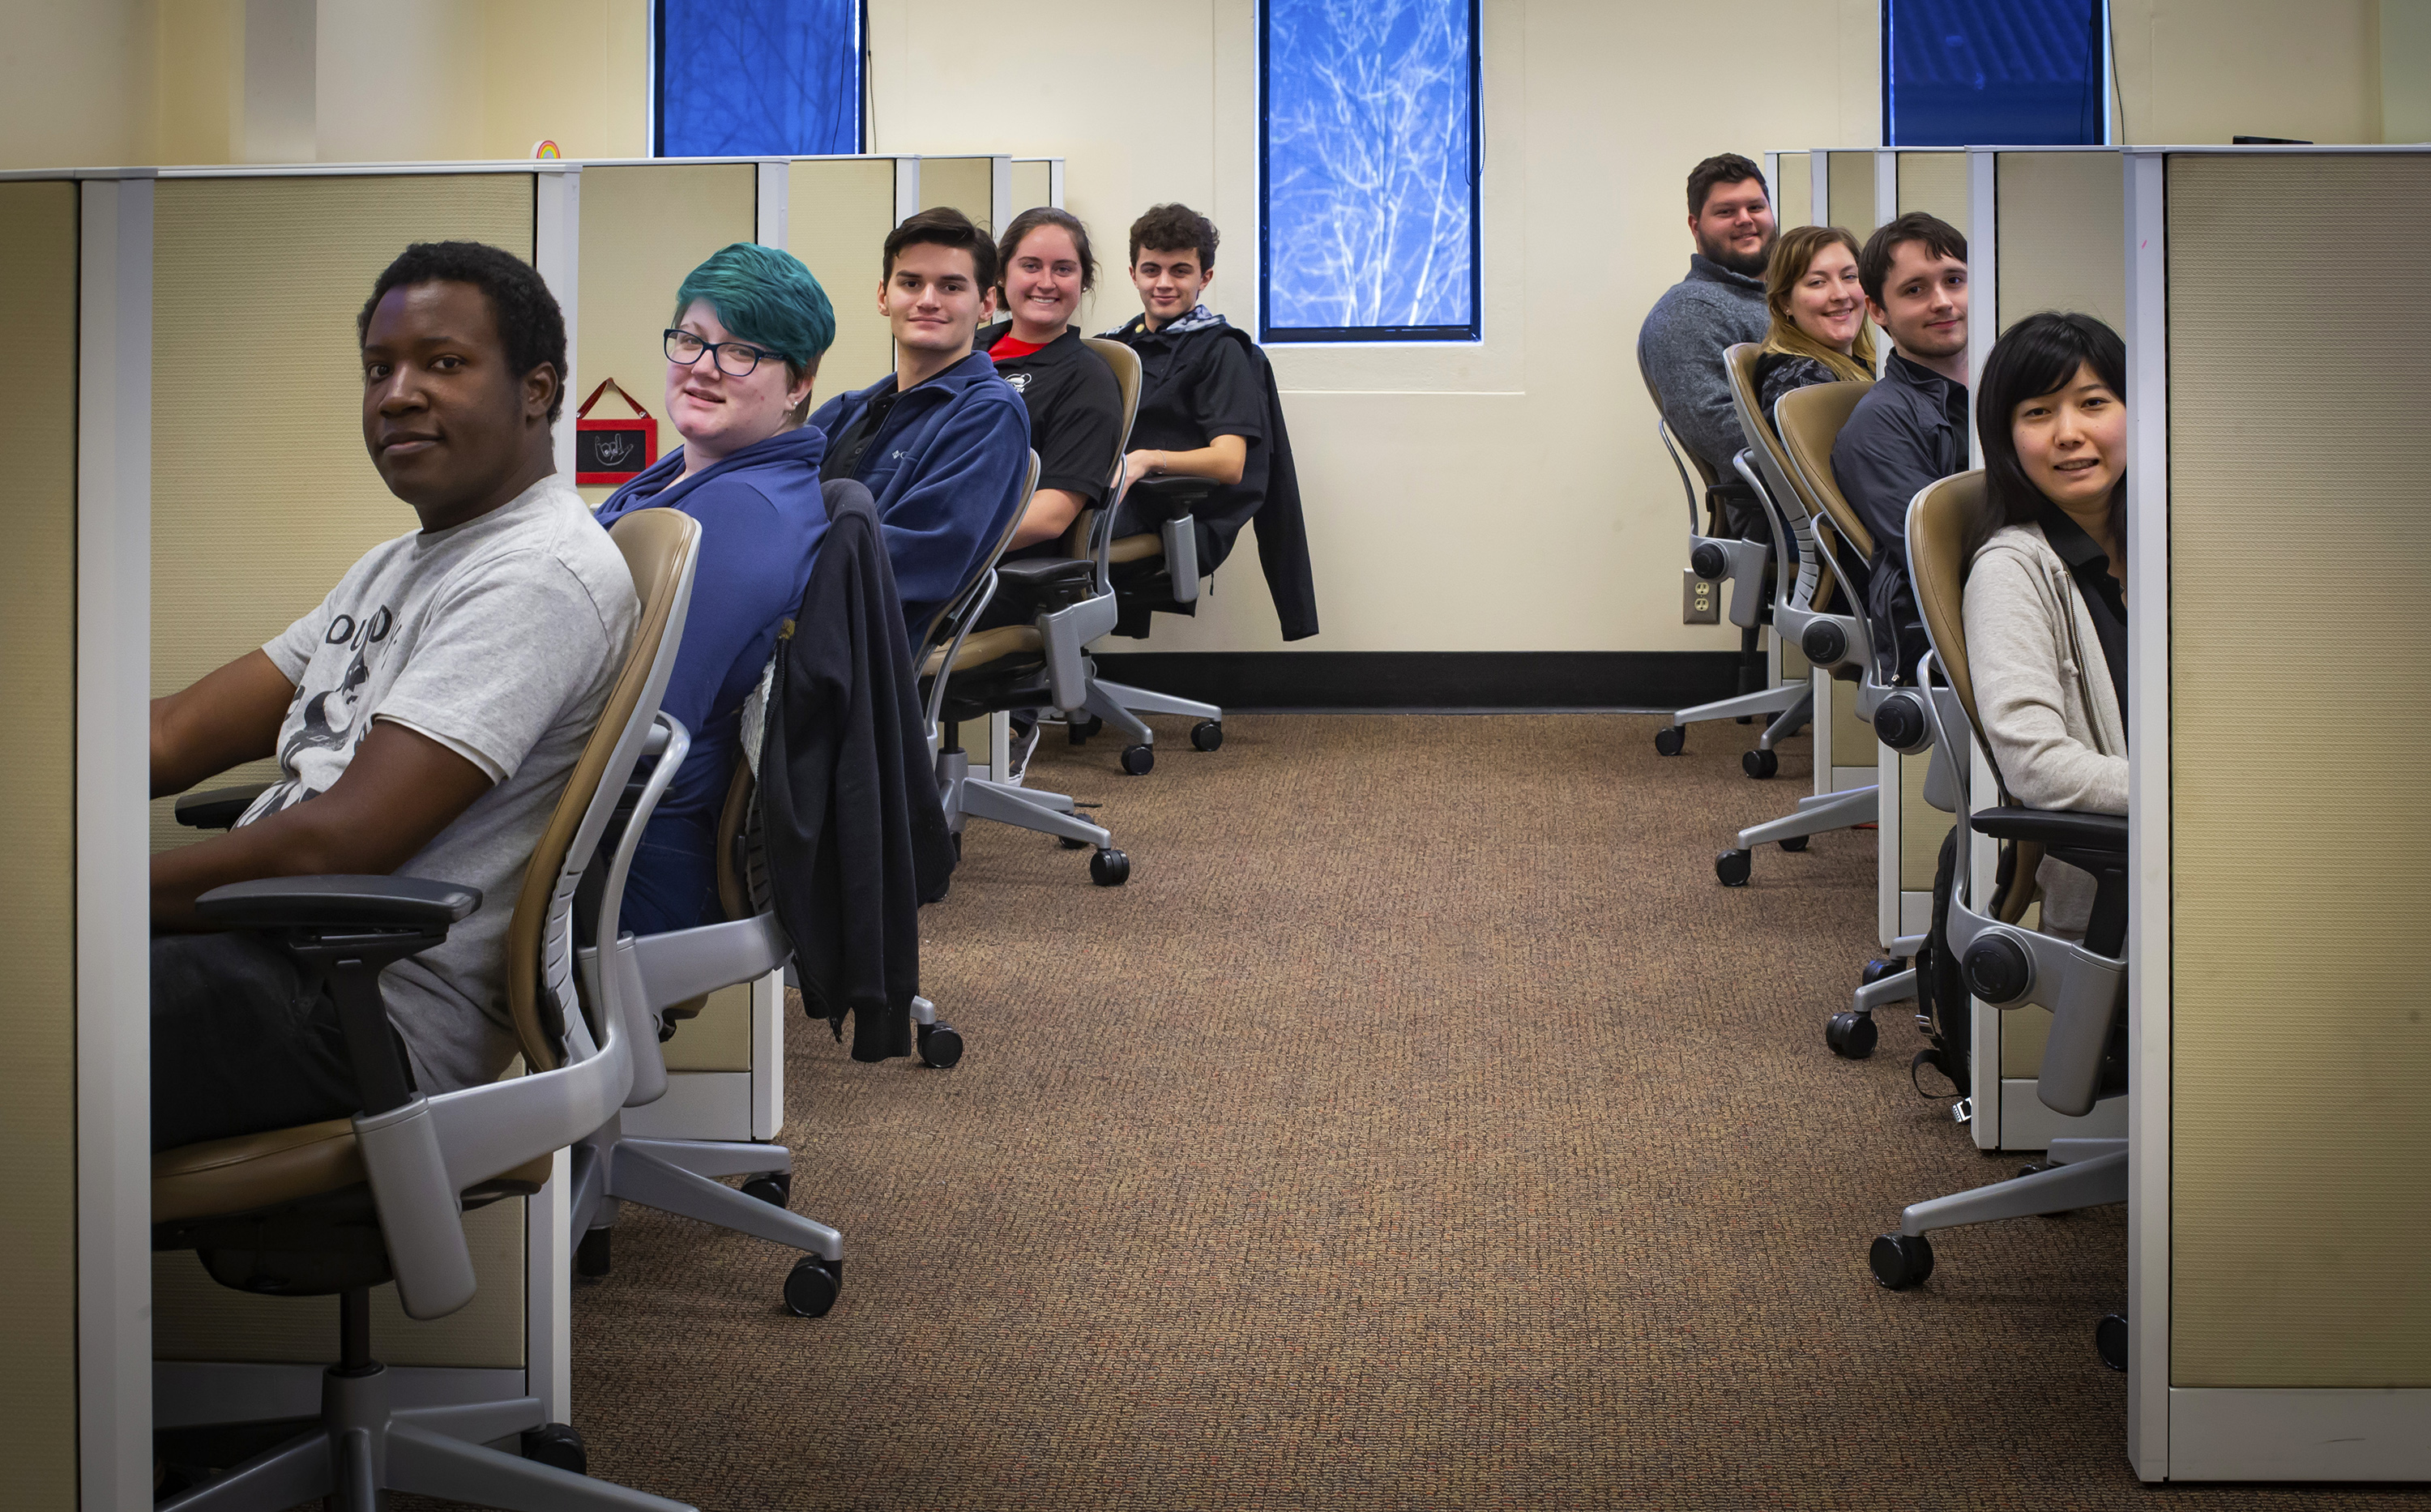 Lined up to help—Valdosta State's first-tier student support center serves as the initial point of contact for assistance related to admissions, housing, res life and IT-based queries. Staff aim to quickly address and resolve issues via phone, email or social media.